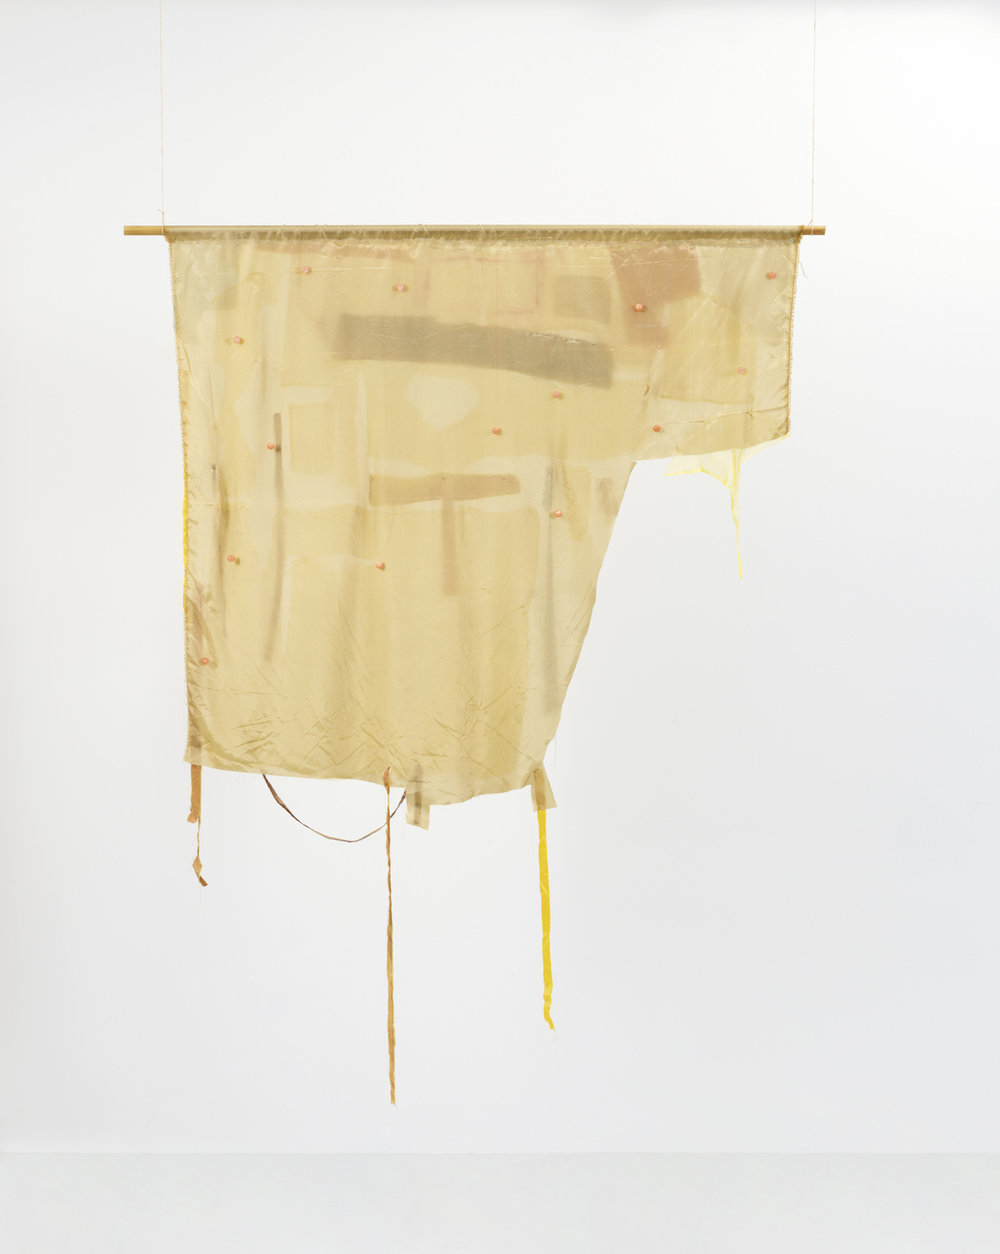 - 27. PRICE: € (EUR) 4.000. Peter Brandt. Yes and More No, 2016-17. Sculptural two-sided banner, applicated fabric, embroidery, pearls, oil paint, pencil and wood. 193 x 135 x 2 cm.